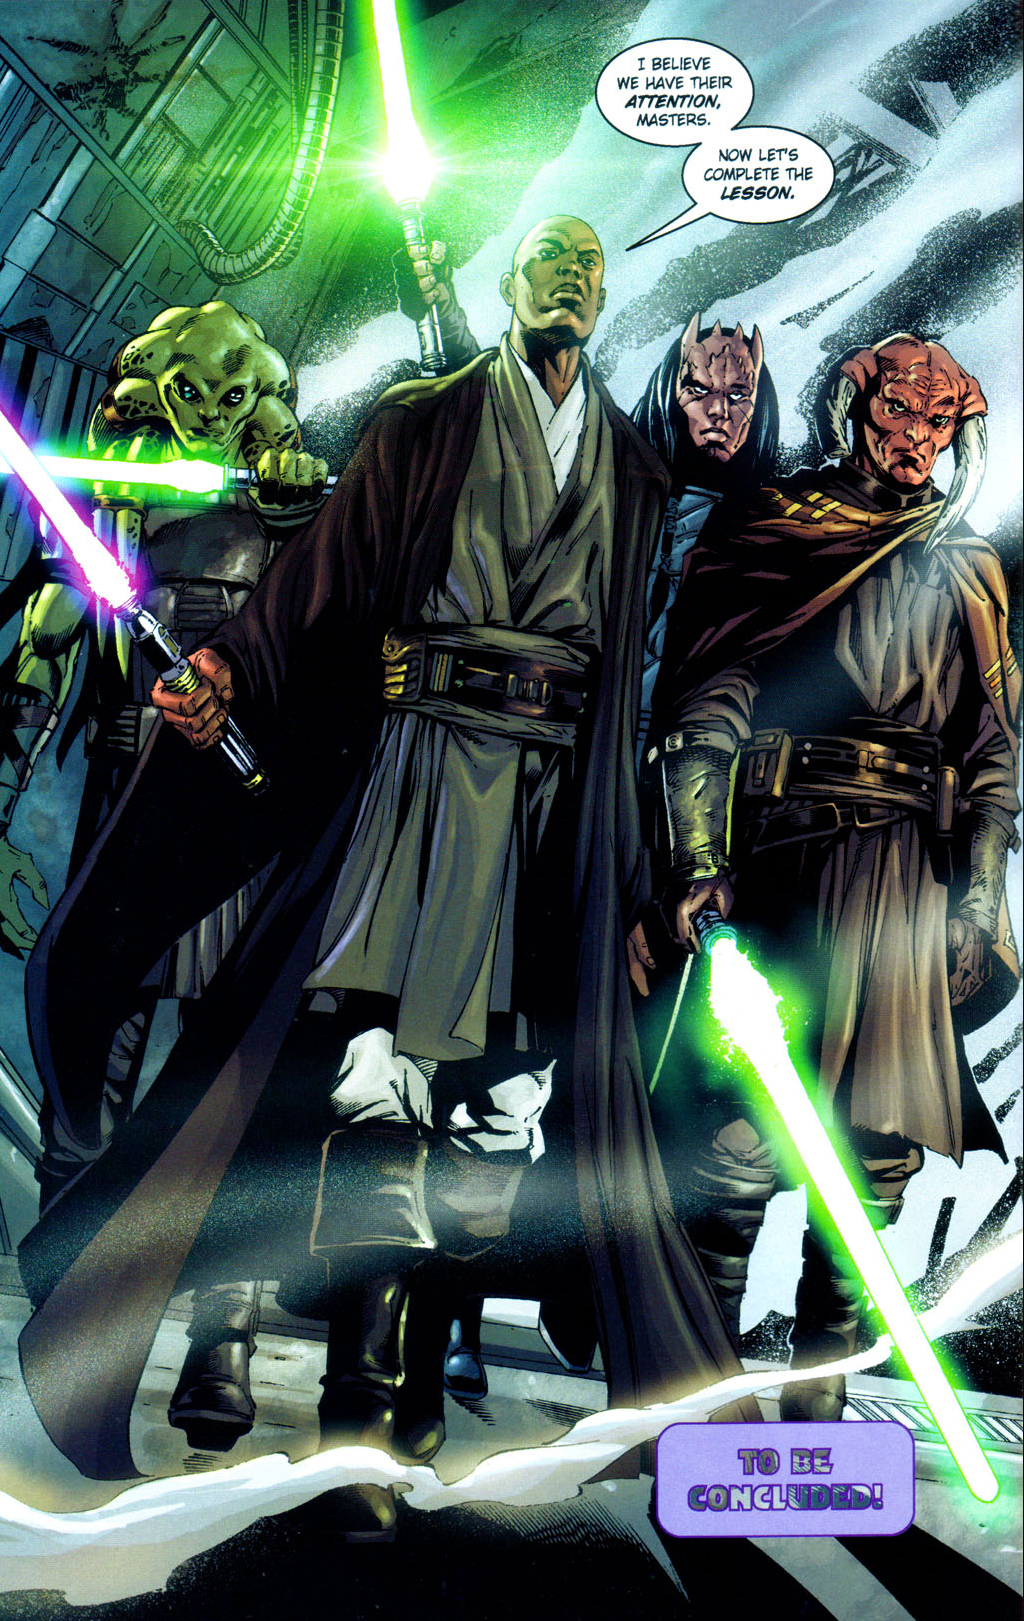 mace windu, kit fisto, agen kolar and saesee tiin